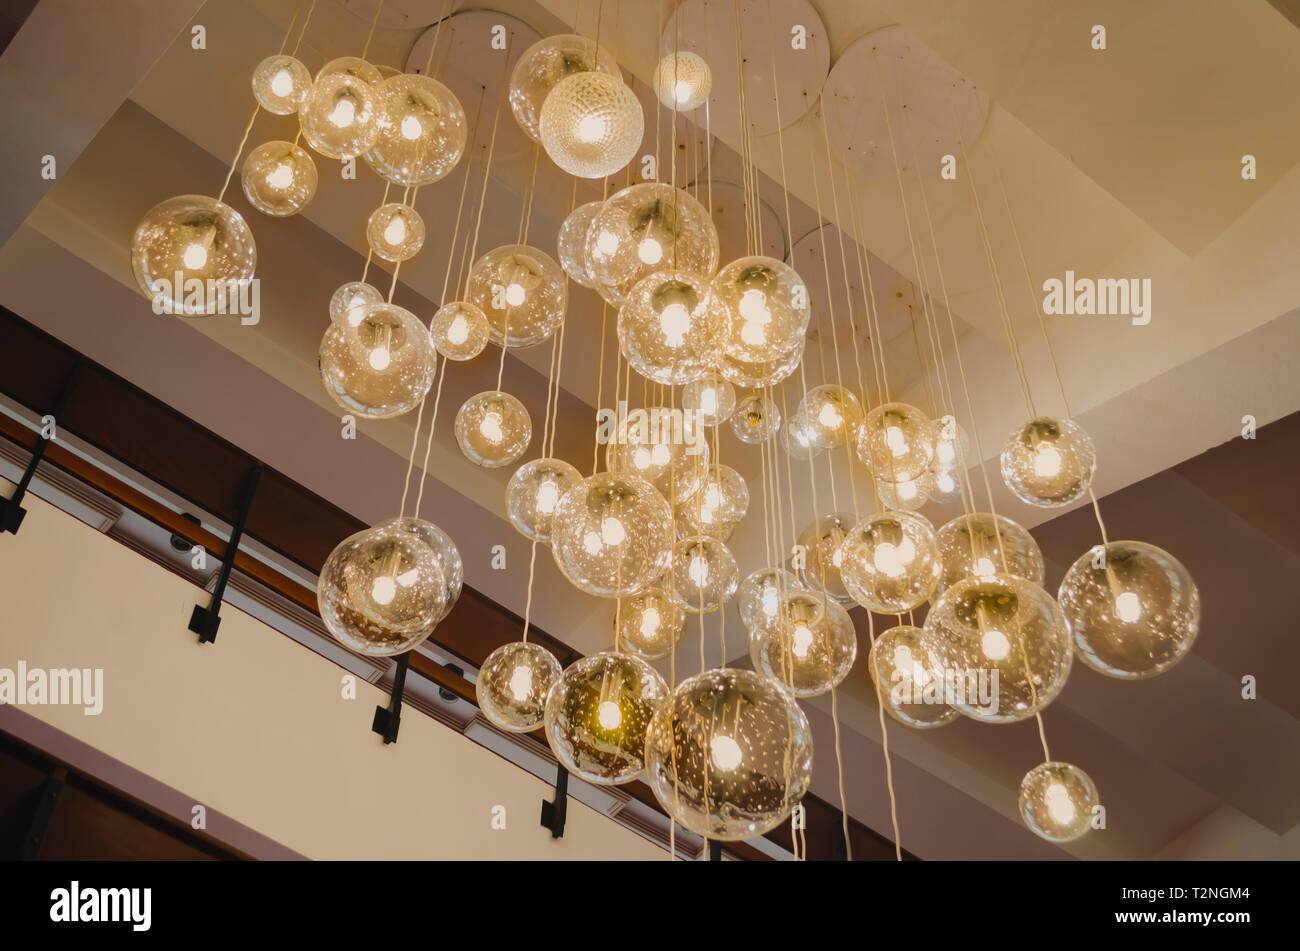 Lights Ceiling Ceiling Pendant Lamp With Beautiful Warm Lights Decorating Theater